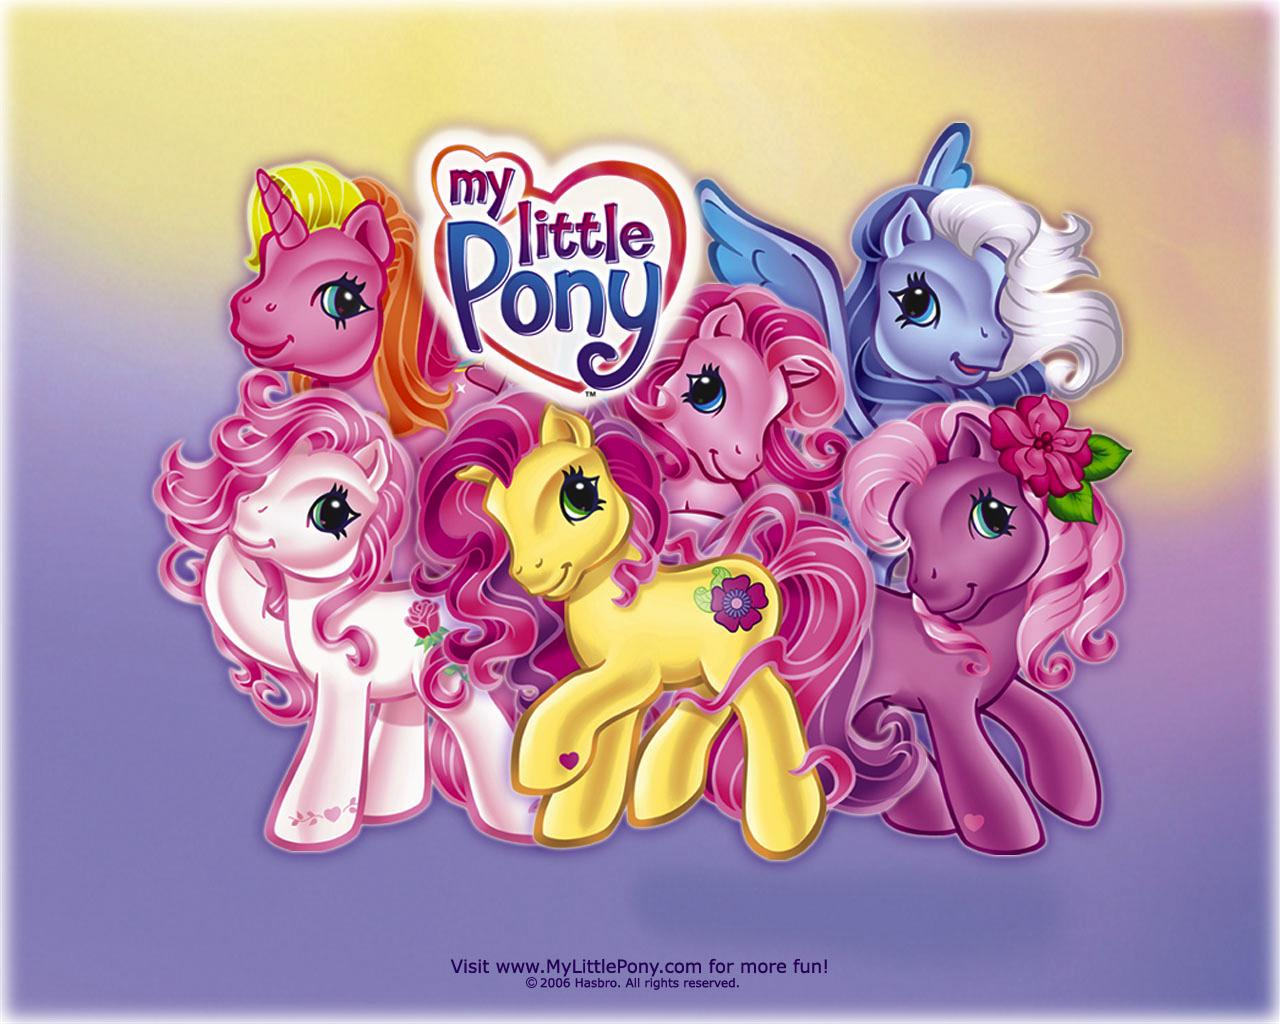 My-little-pony-my-little-pony-25675212801024